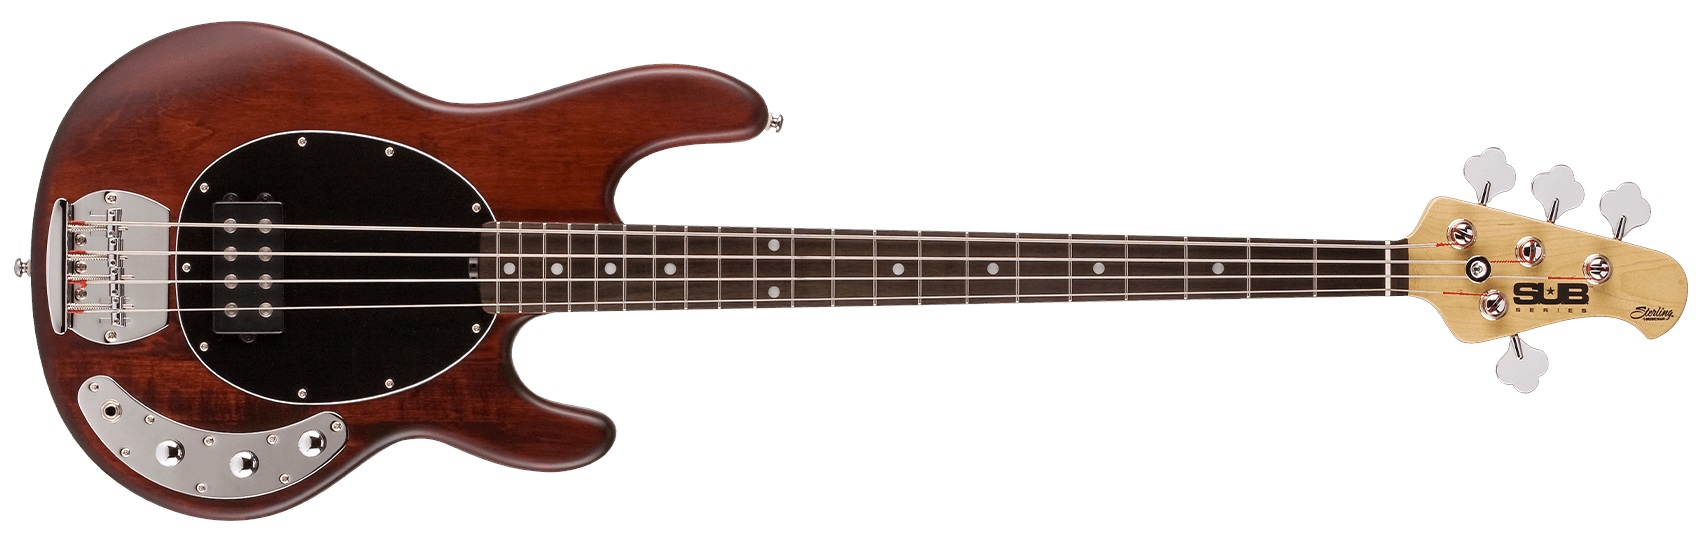 Sterling by Music Man SUB StingRay4 Walnut Satin